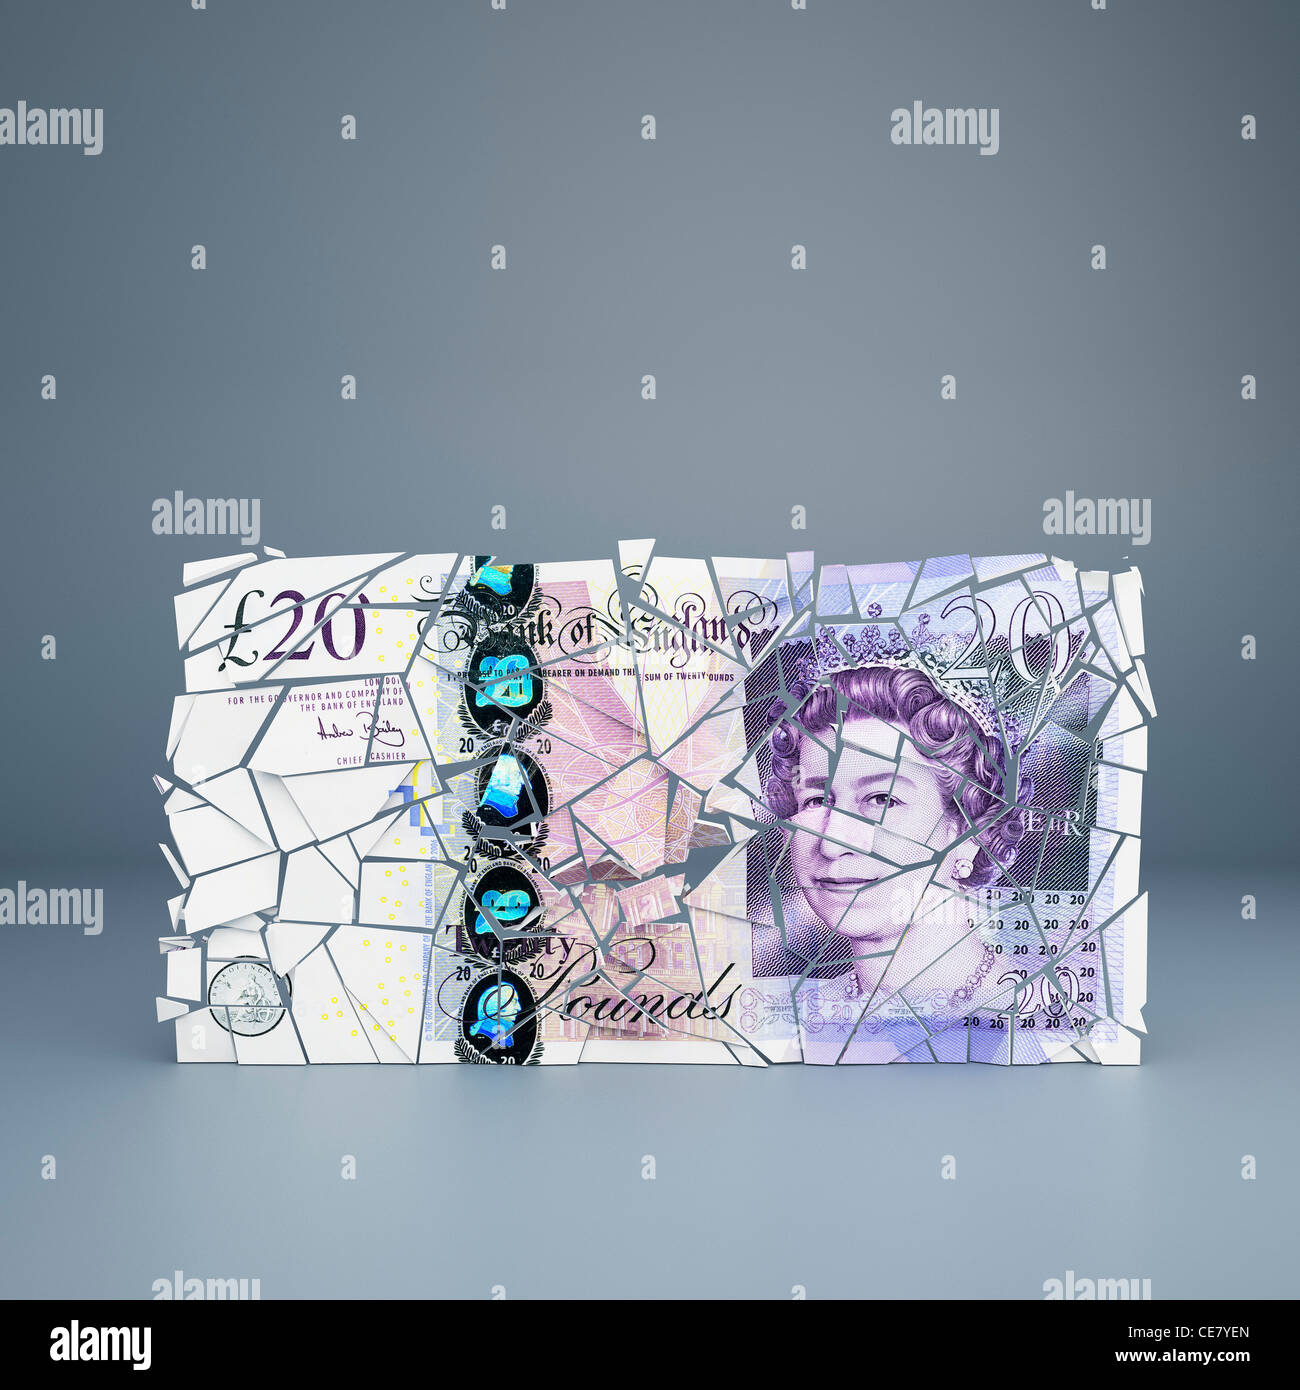 UK 20 pound note cracking up - representing debt crisis, fragility of the economy - Stock Image